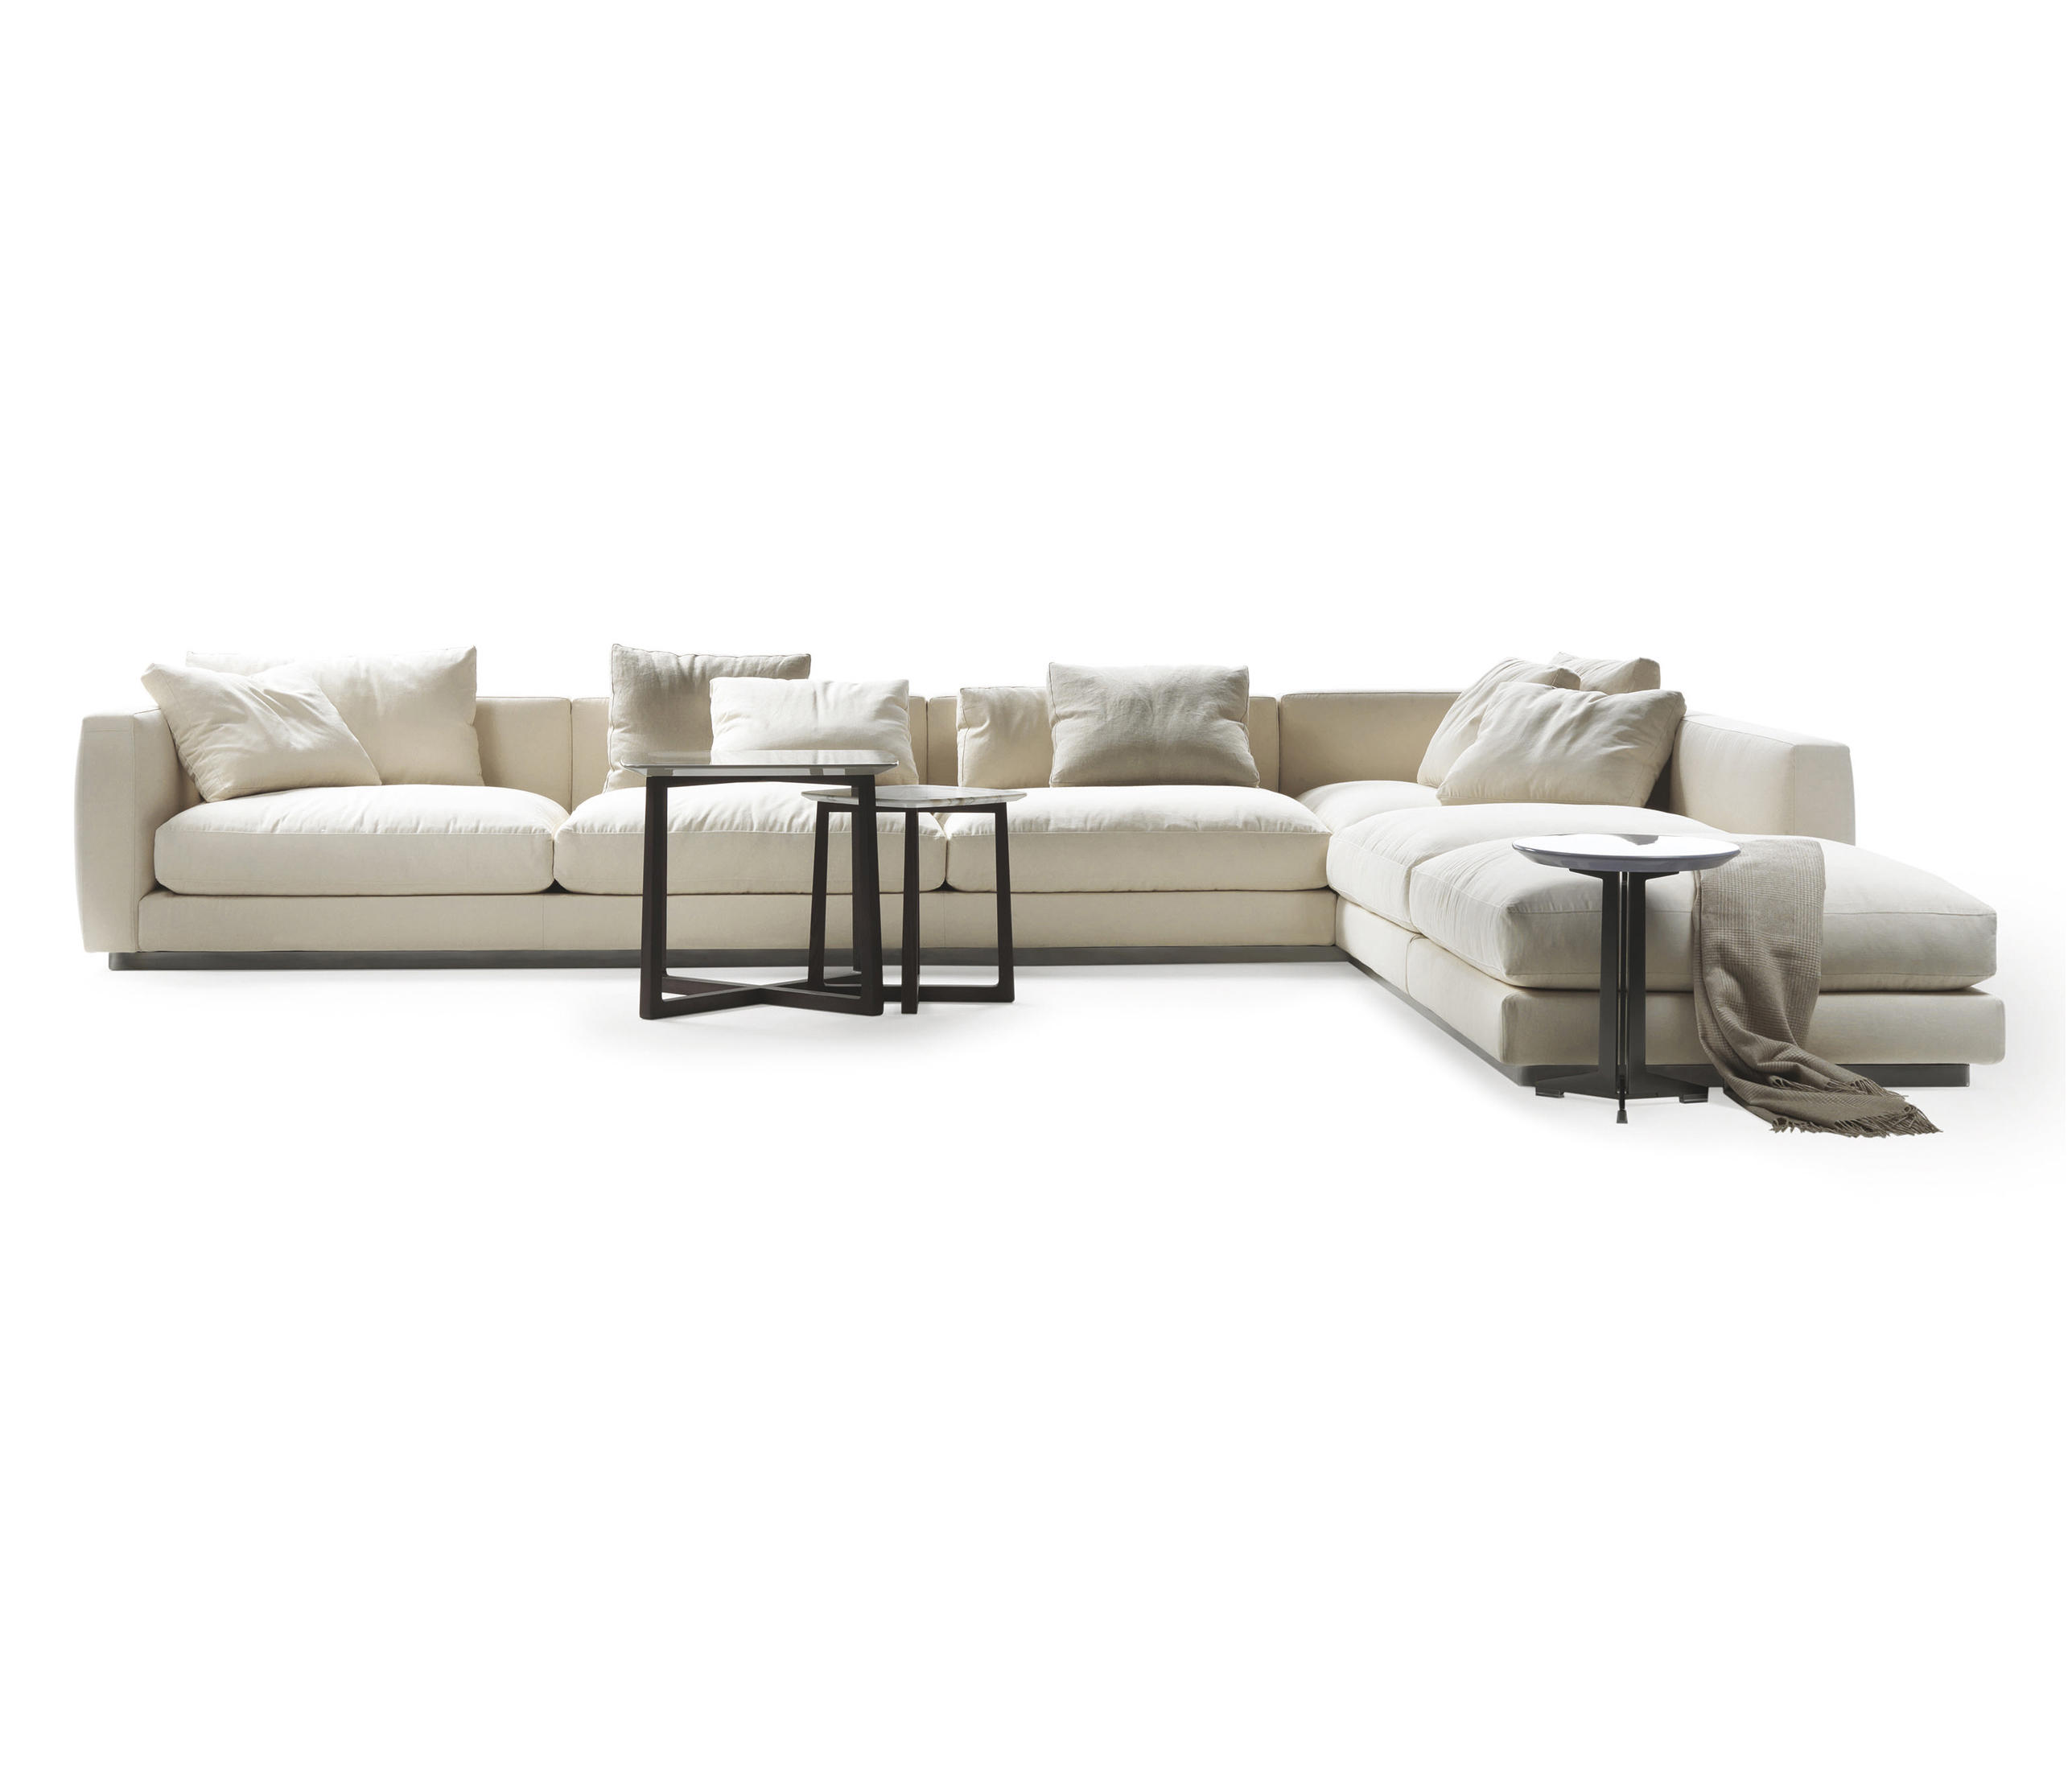 Eck Sofa Pleasure Ecksofa Sofas Von Flexform Architonic